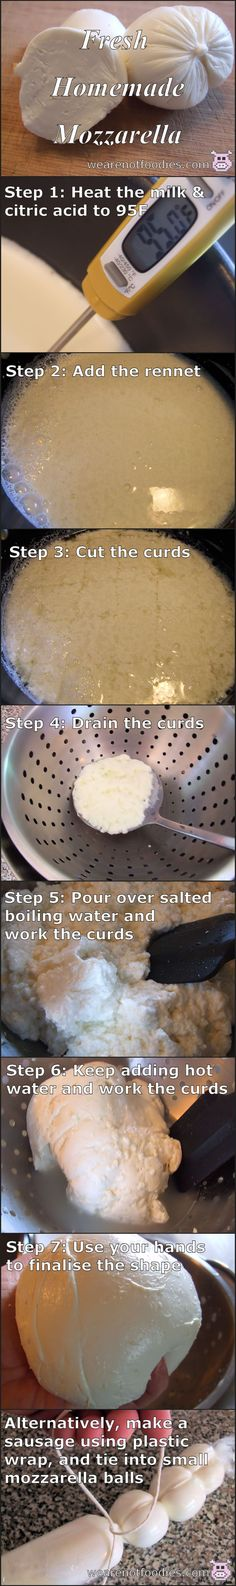 Step by step photo guide for making fresh home-made mozzarella